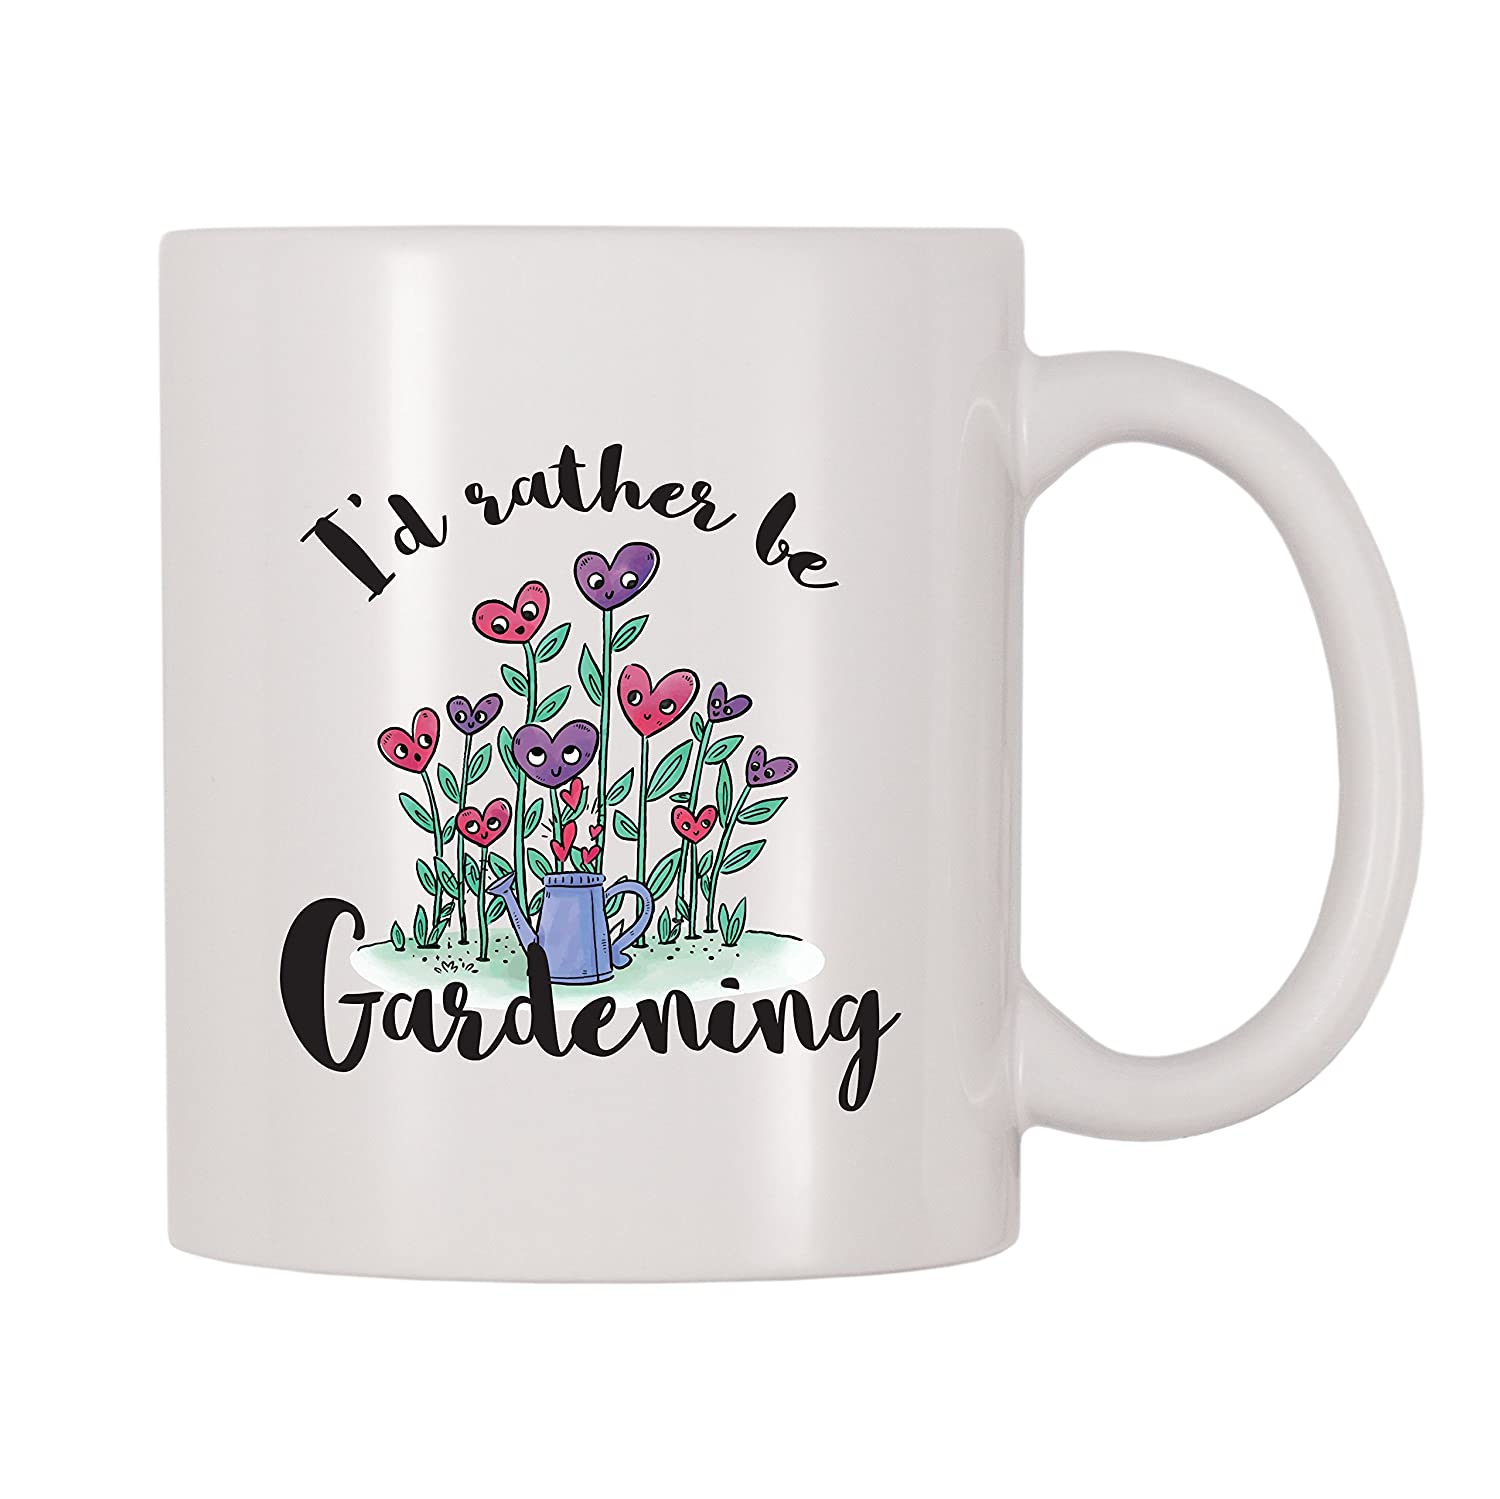 4 All Times I'd Rather Be Gardening Coffee Mug (11 oz)